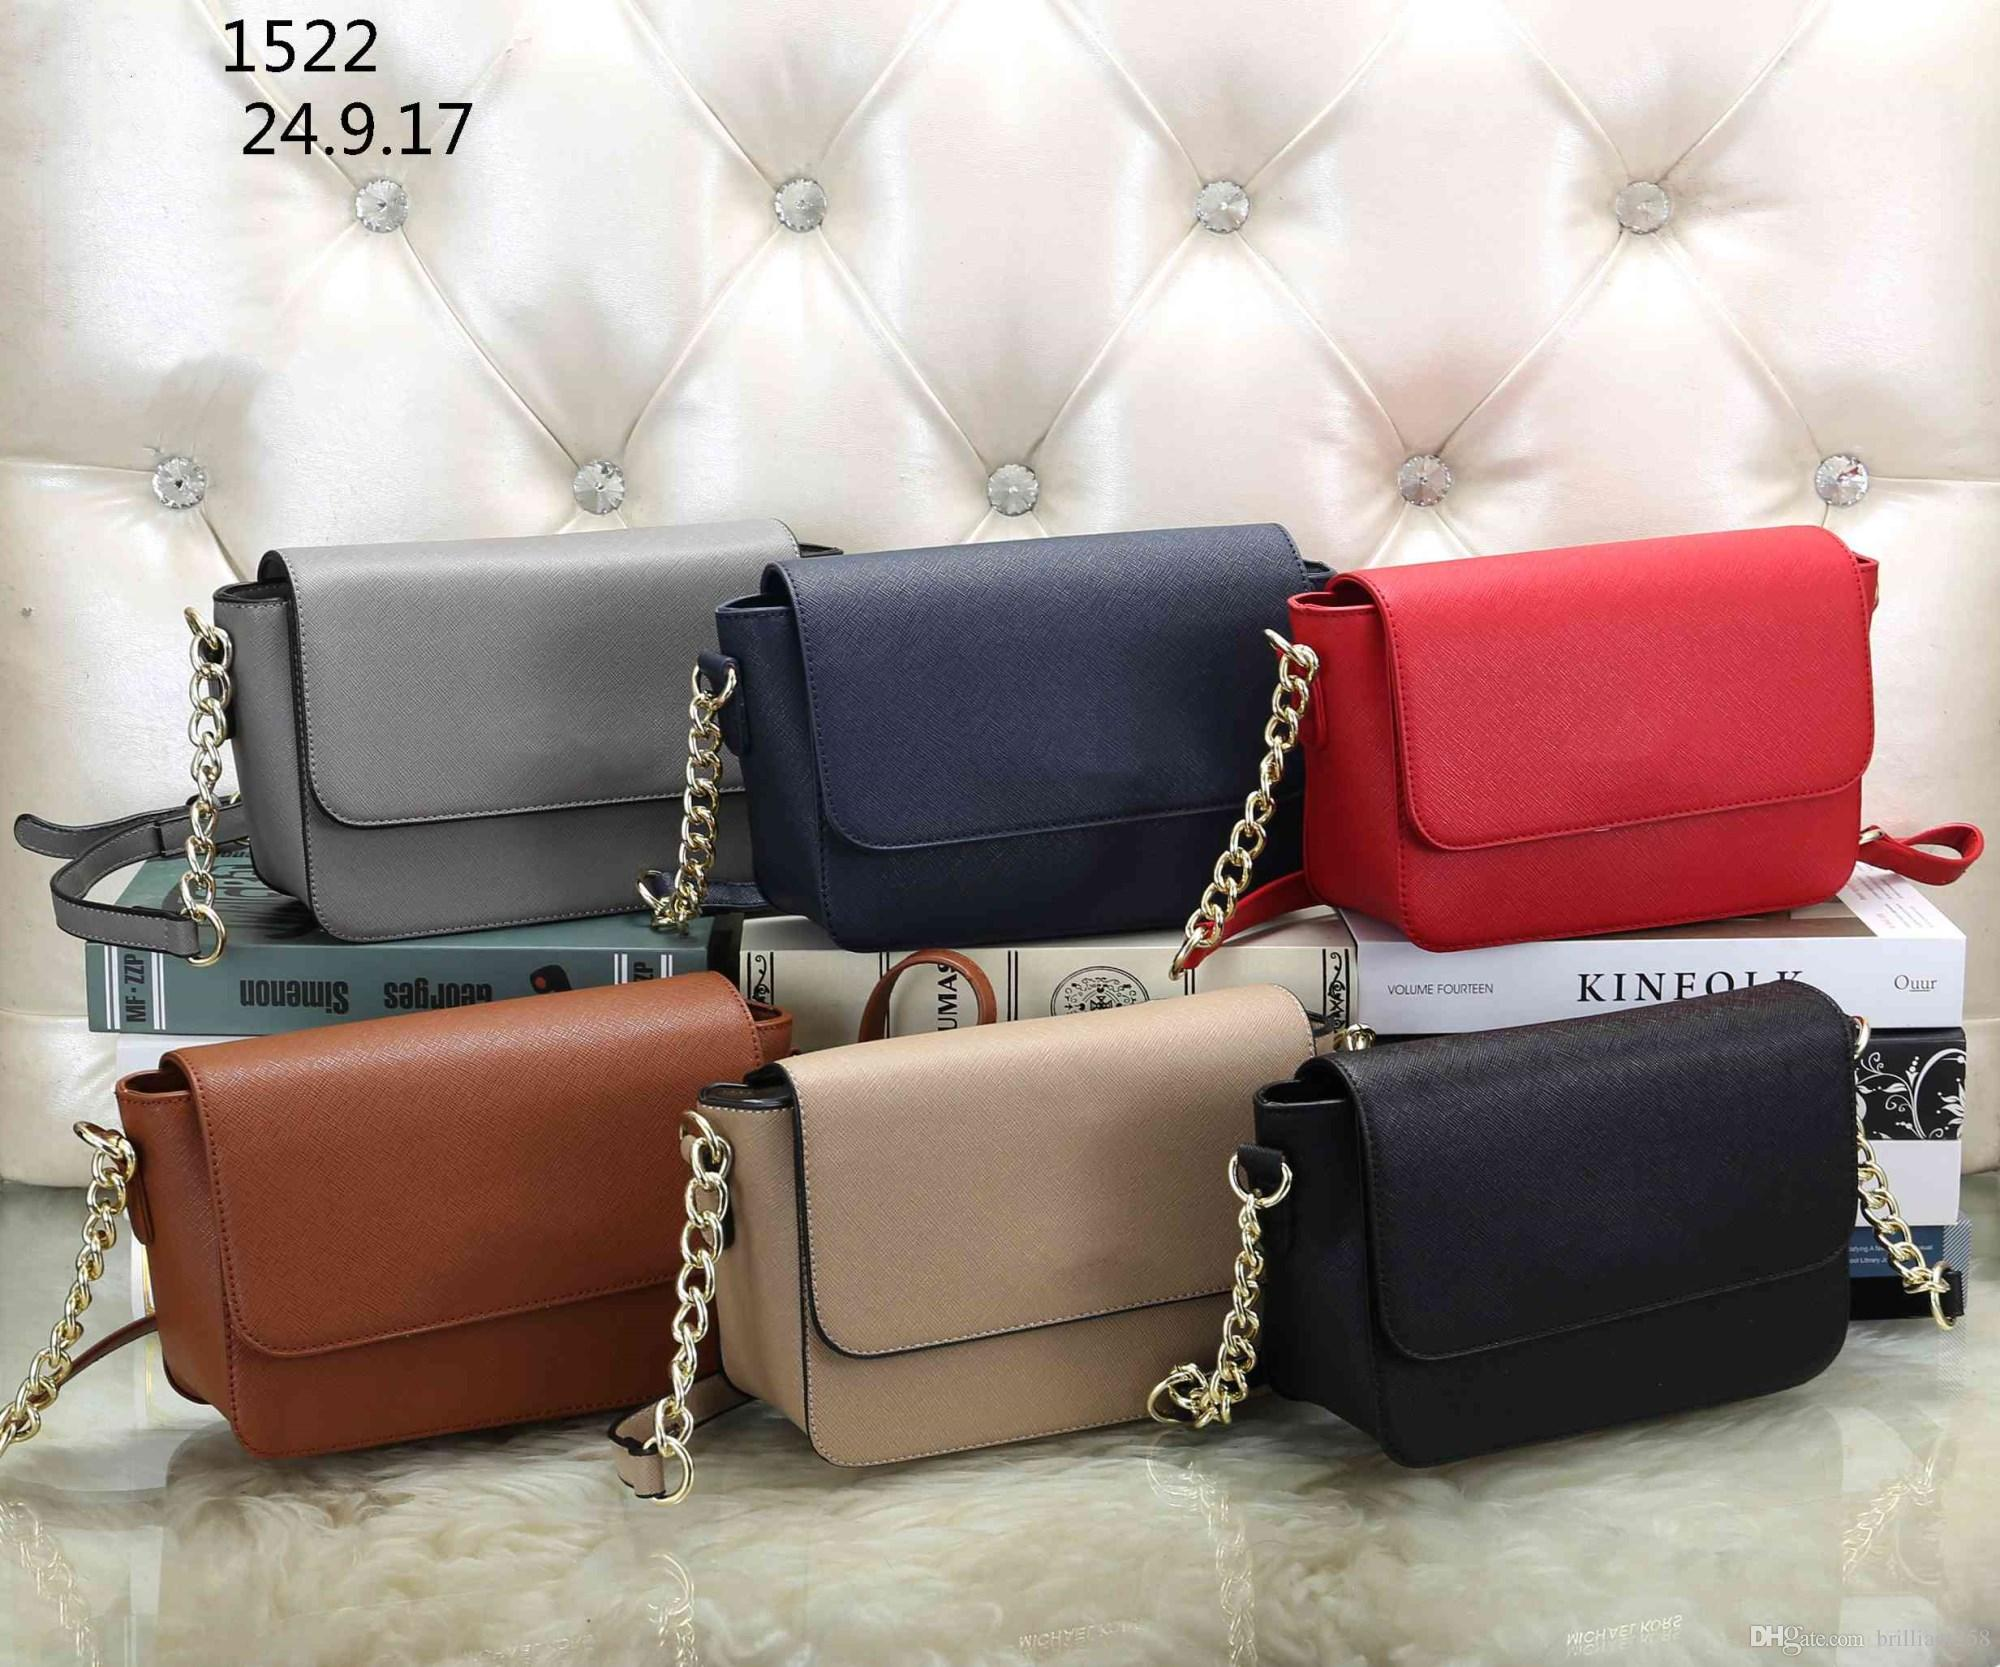 63ed760954 2019 Styles Handbag M Famous Designer Brand Name Fashion Leather Handbags  Women Tote Shoulder Bags Lady Leather Handbags Bags Purse 1522 Mens  Shoulder Bags ...